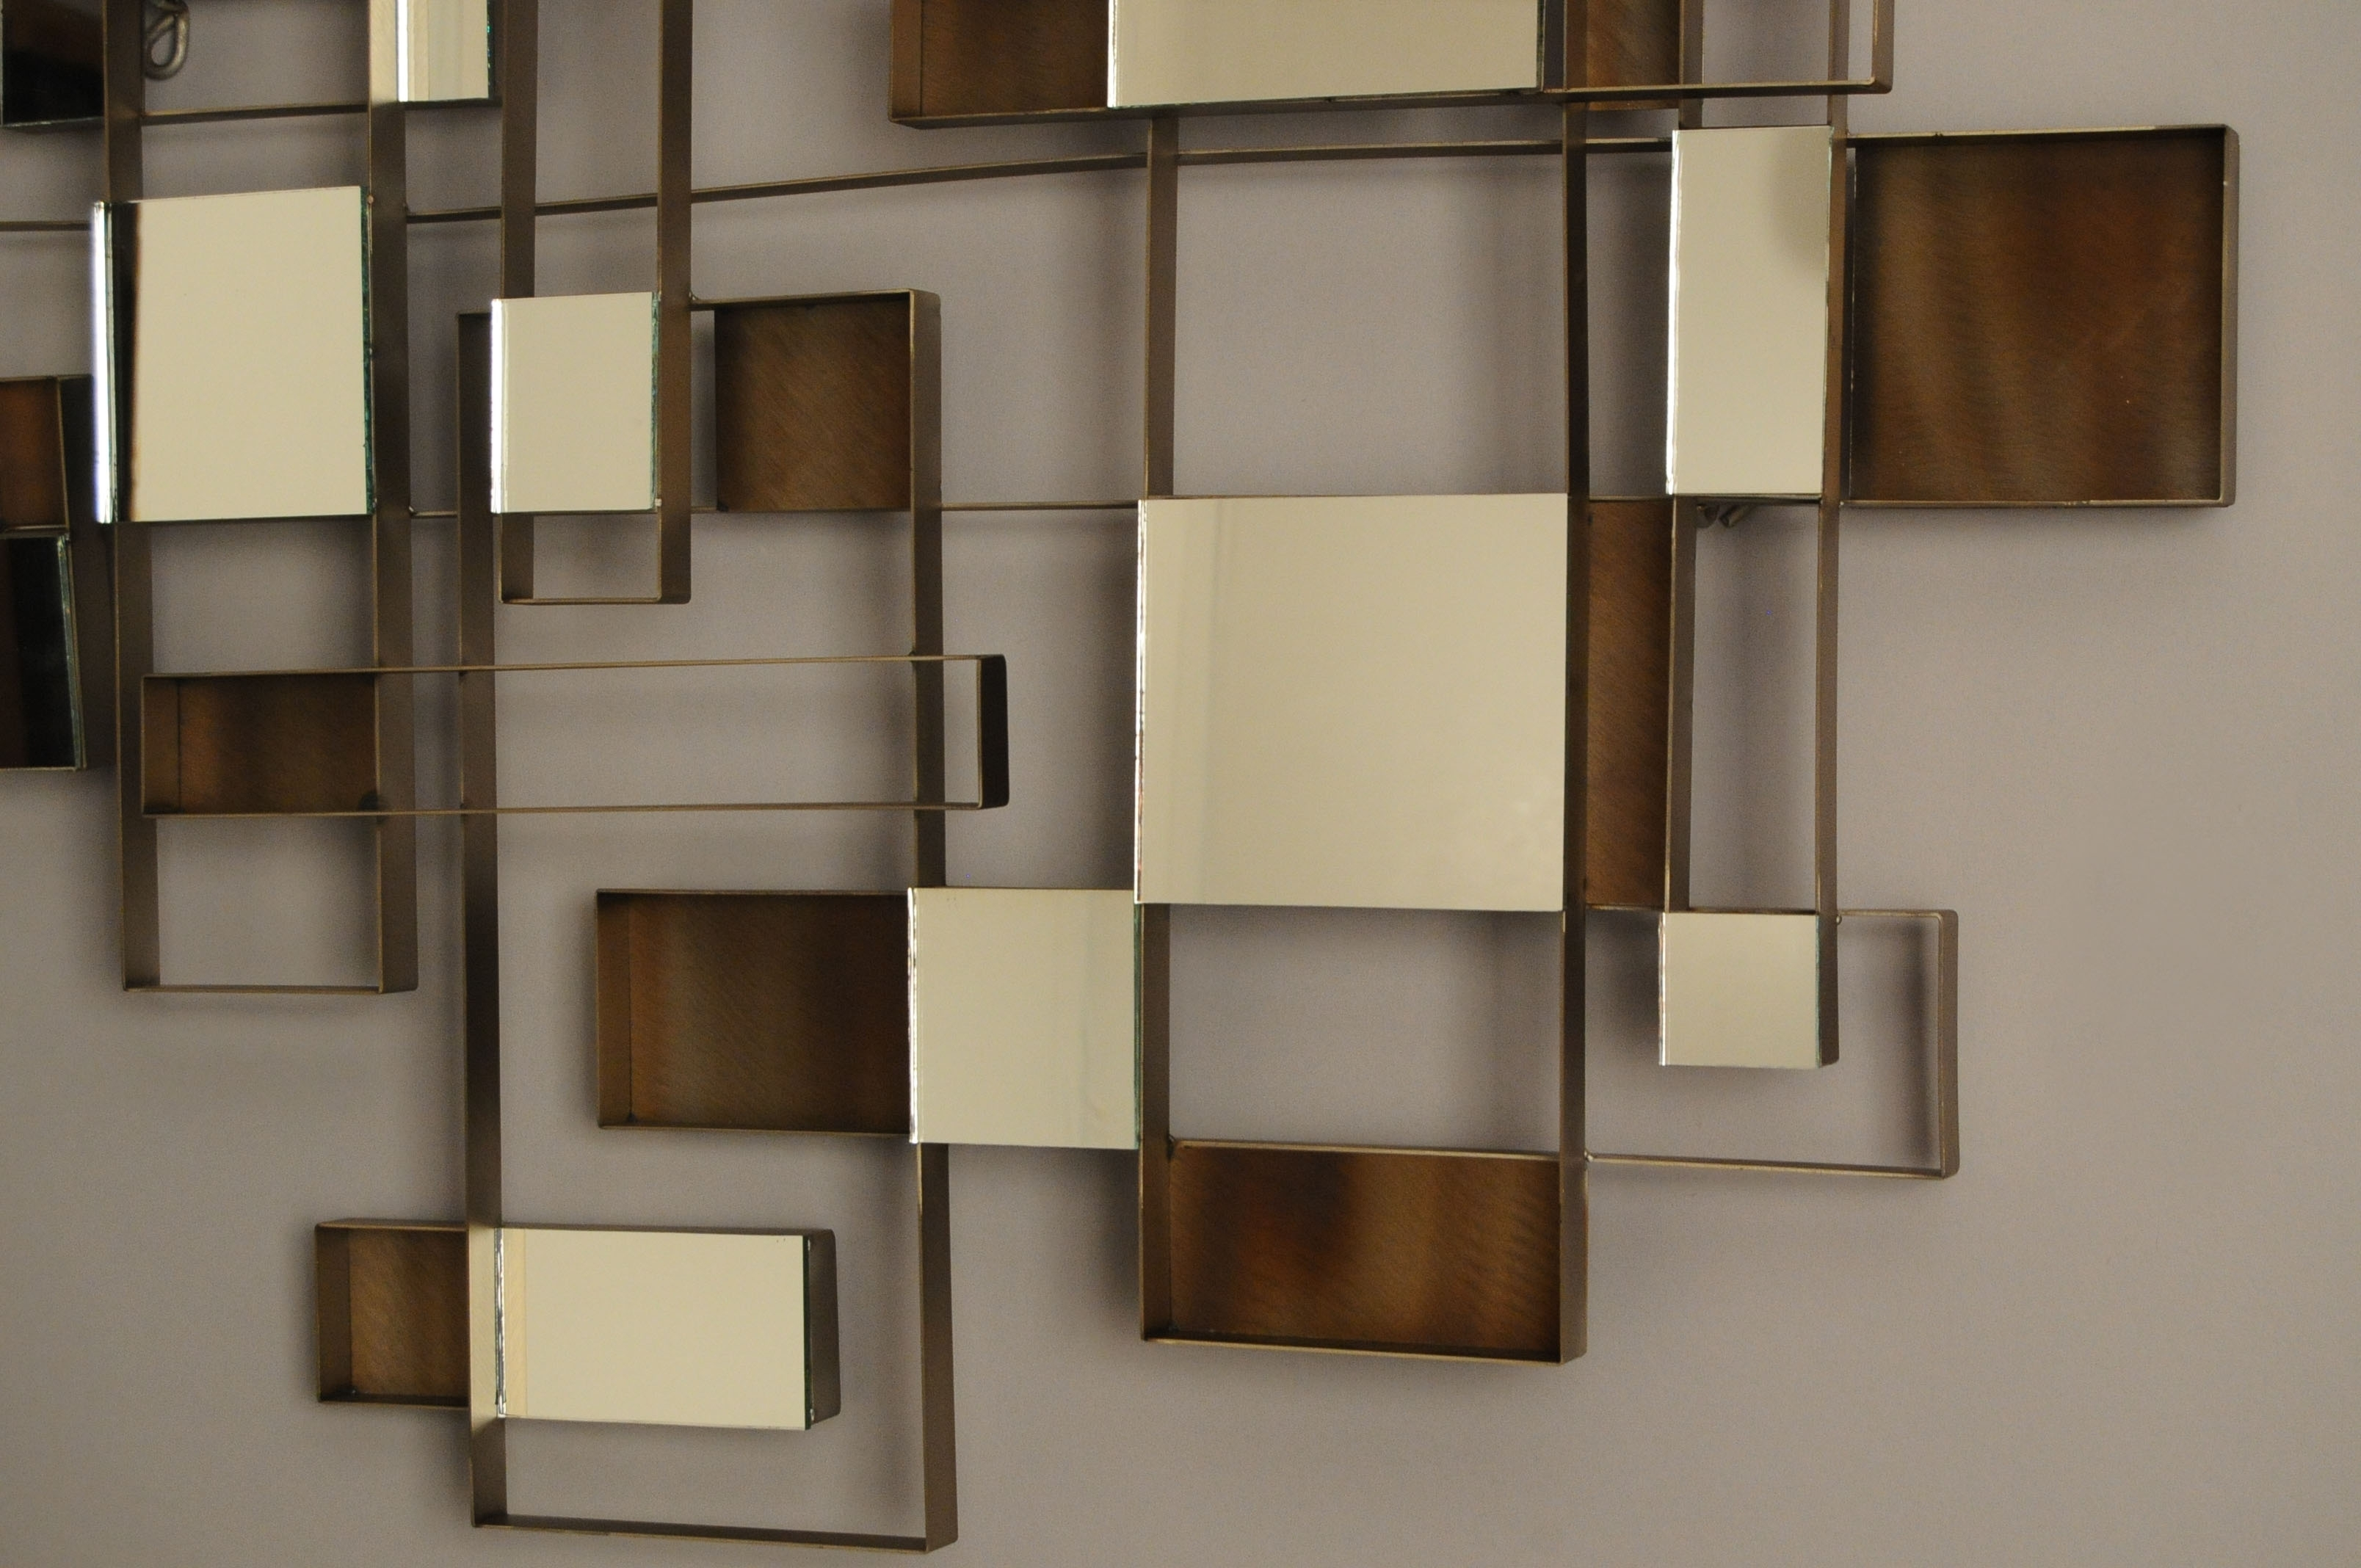 Wall Art Designs: Awesome Wall Art Mirror With Abstract Pattern For Most Recent Rectangular Wall Accents (View 14 of 15)